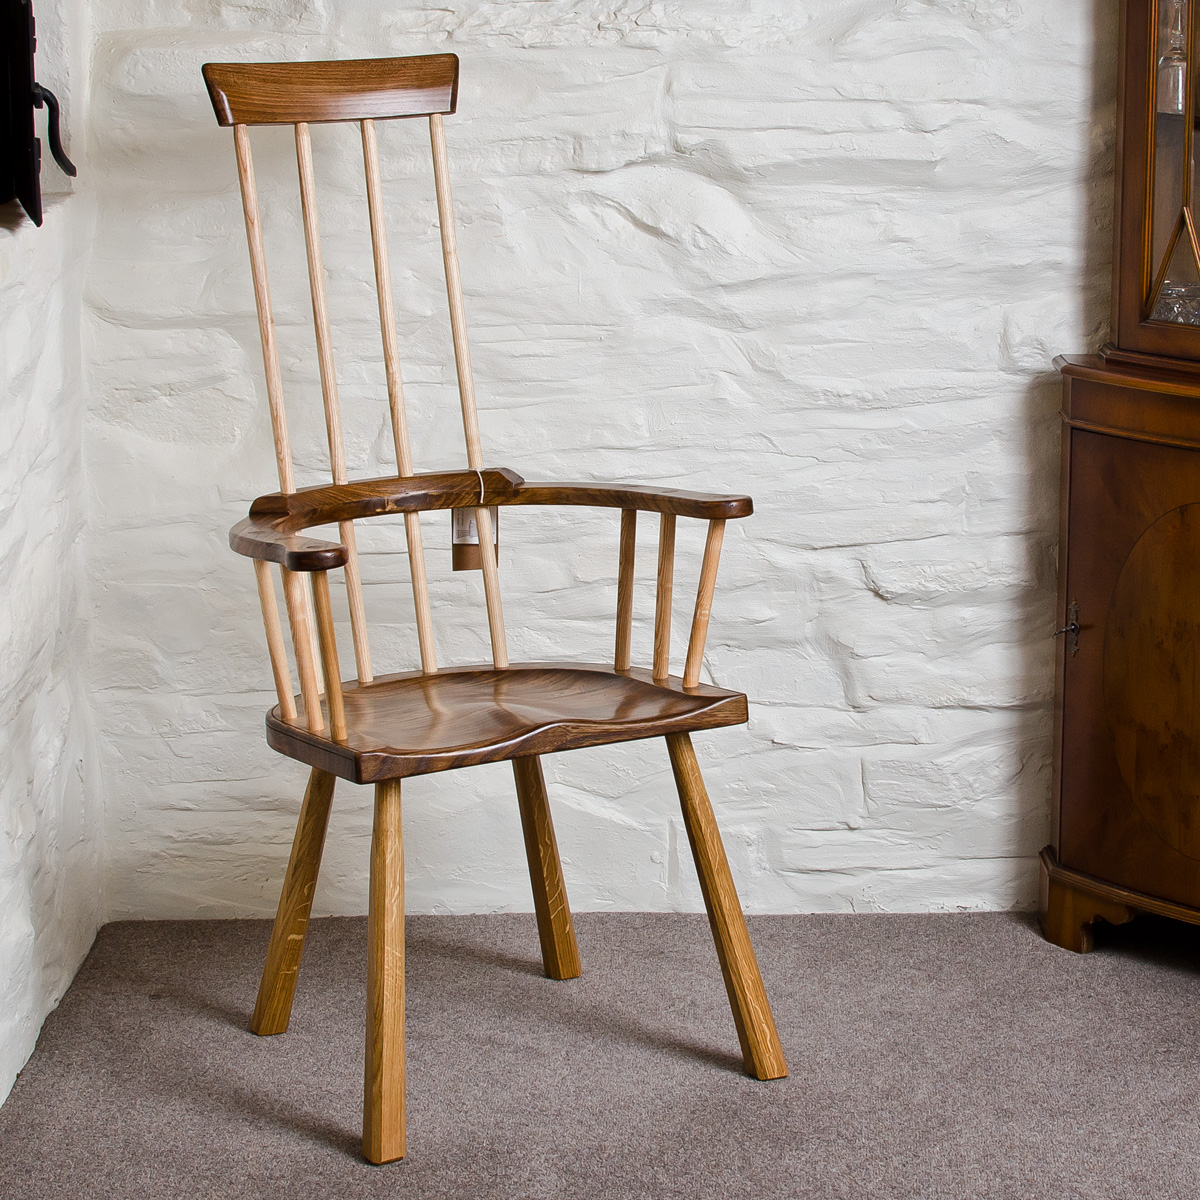 handmade wooden chairs pvc lounge chair traditional 4 stick